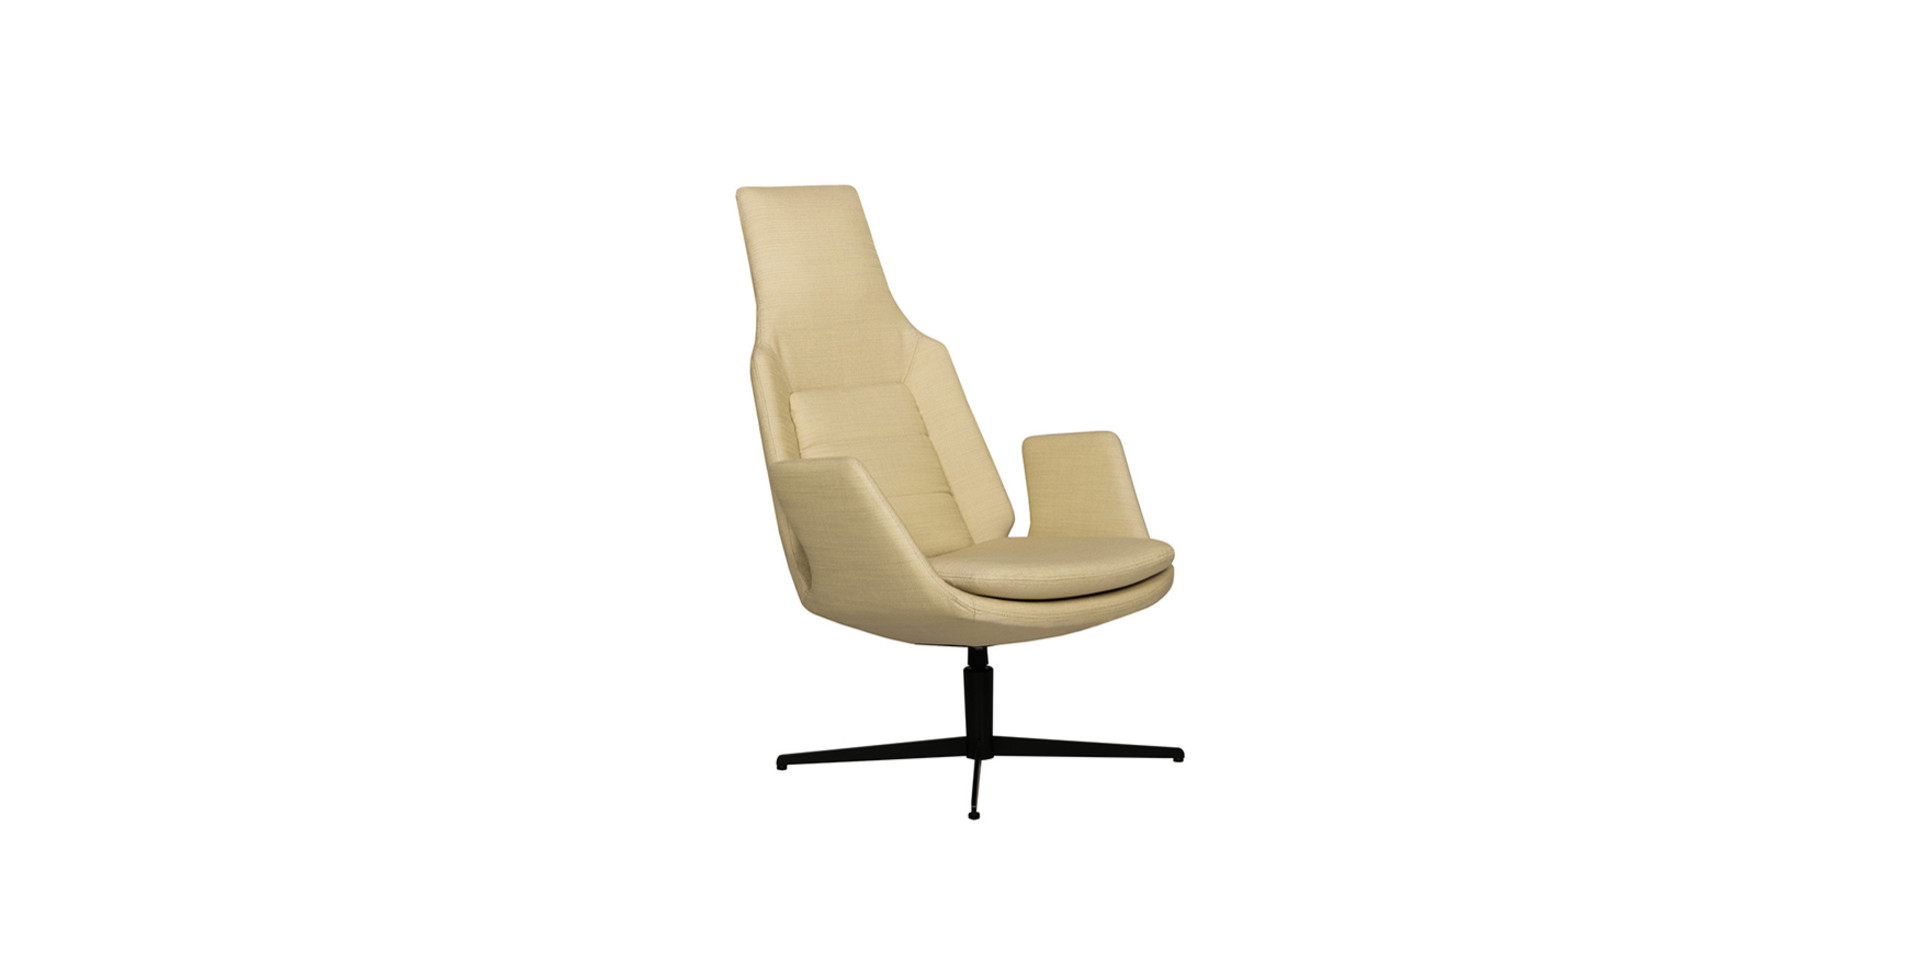 Sits Hope fauteuil-bona4_yellow_2